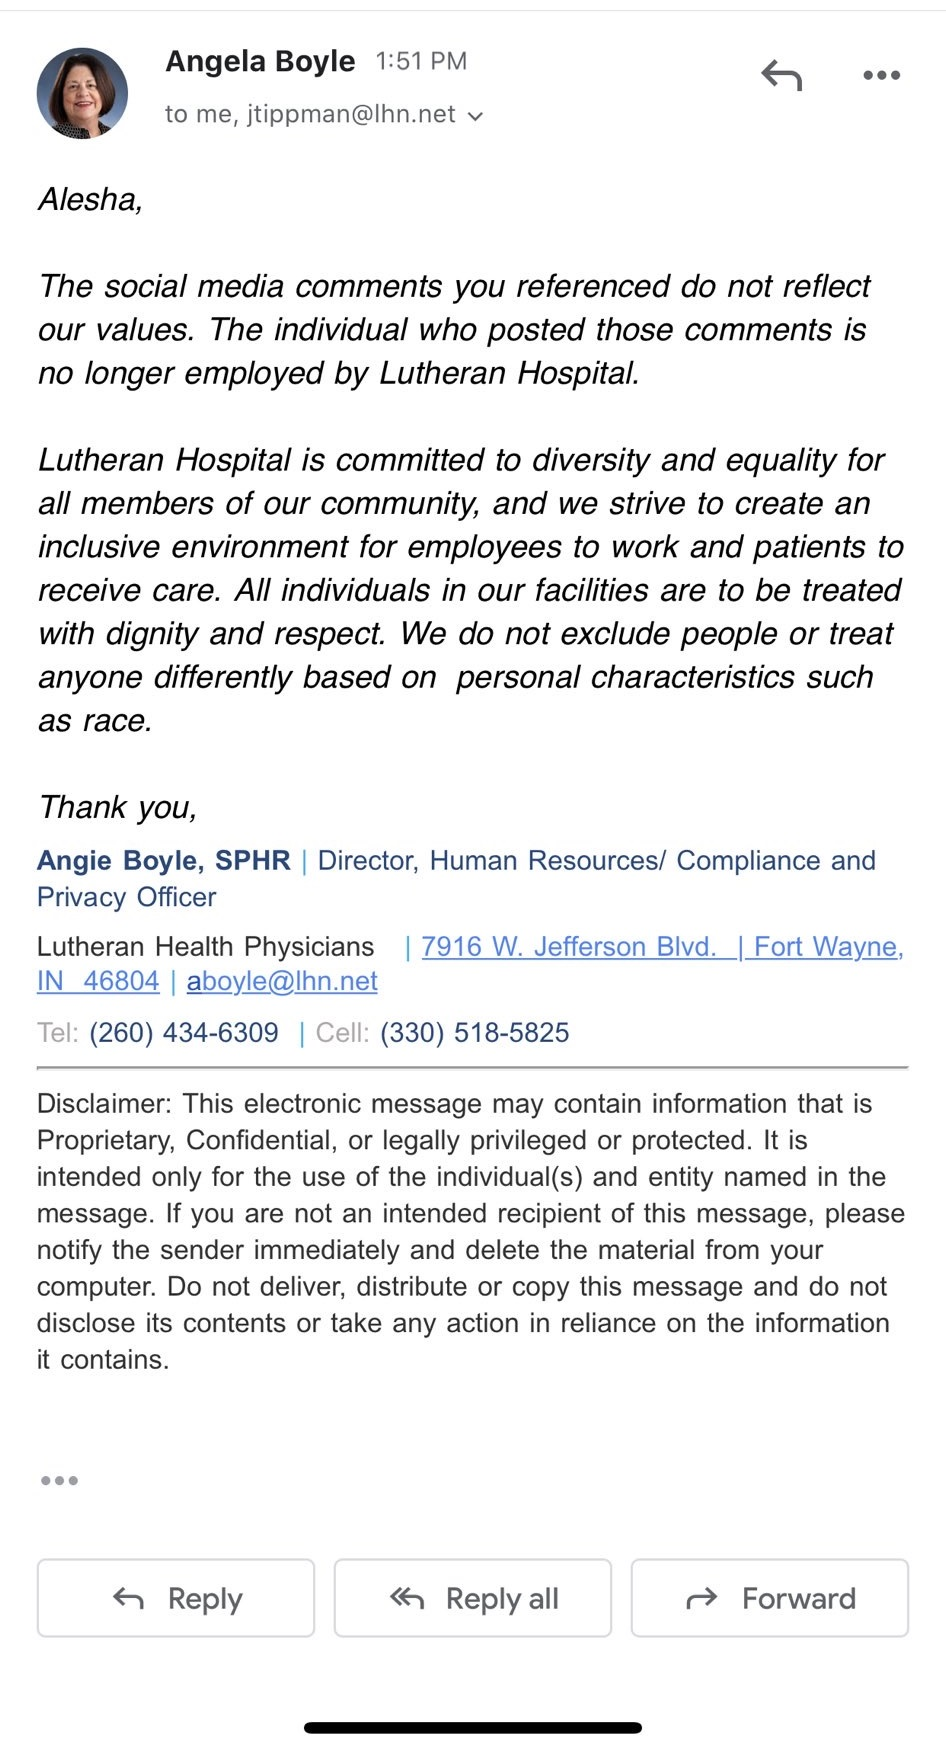 Lutheran Hospital Indiana's Human Resources Director sent an email, revealing K Ann Wilks is no longer employed by the hospital. In the email, Wilks (real name Kristy Ann Wilker) isn't mentioned by name. But, the email says the hospital stands for diversity, and anyone with views such as Wilks' don't align with theirs, adding that she is no longer employed there.